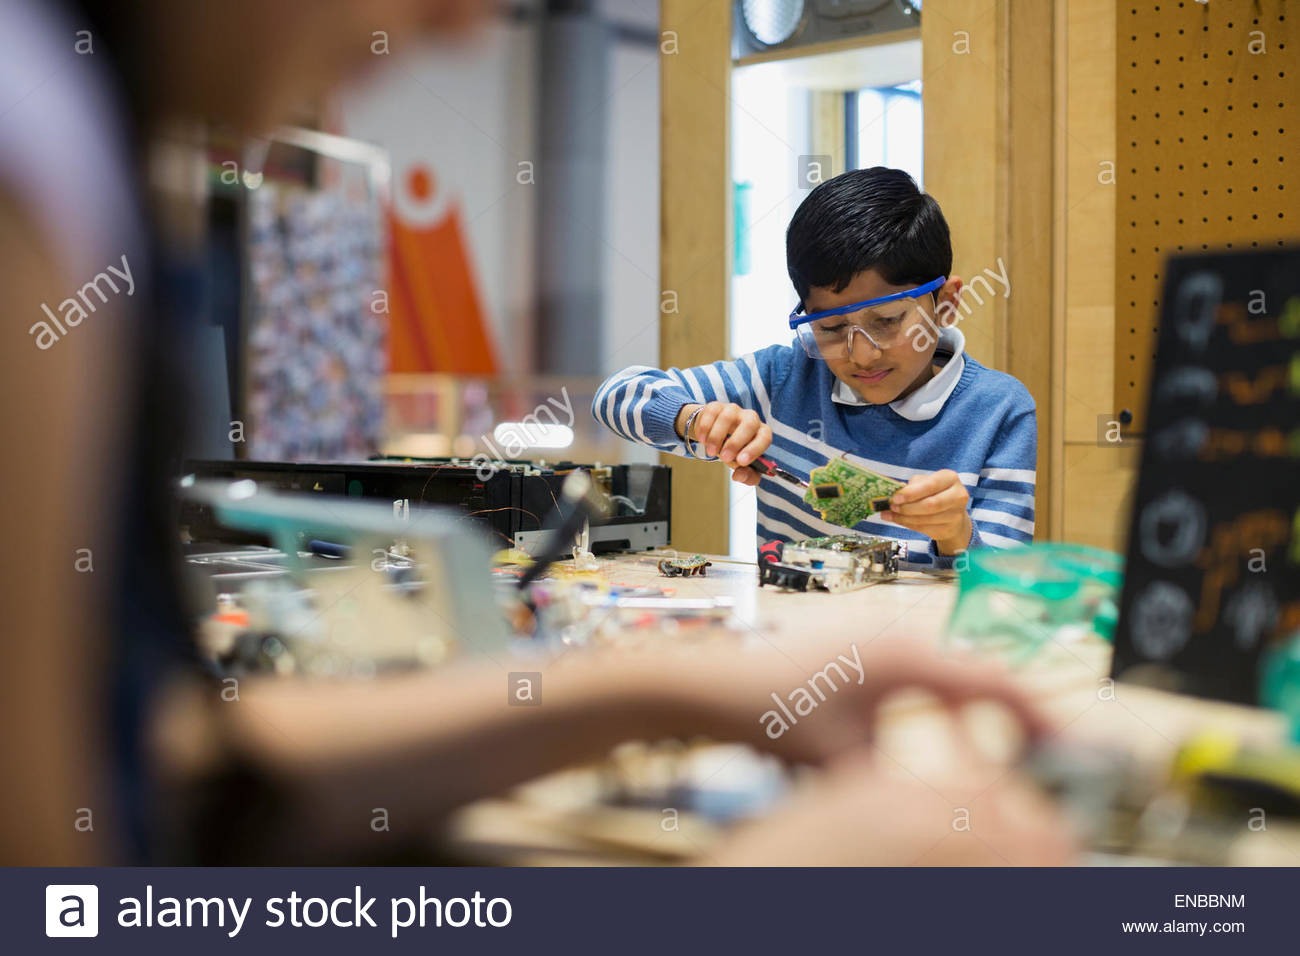 Boy wearing goggles assembling electronics at science center - Stock Image